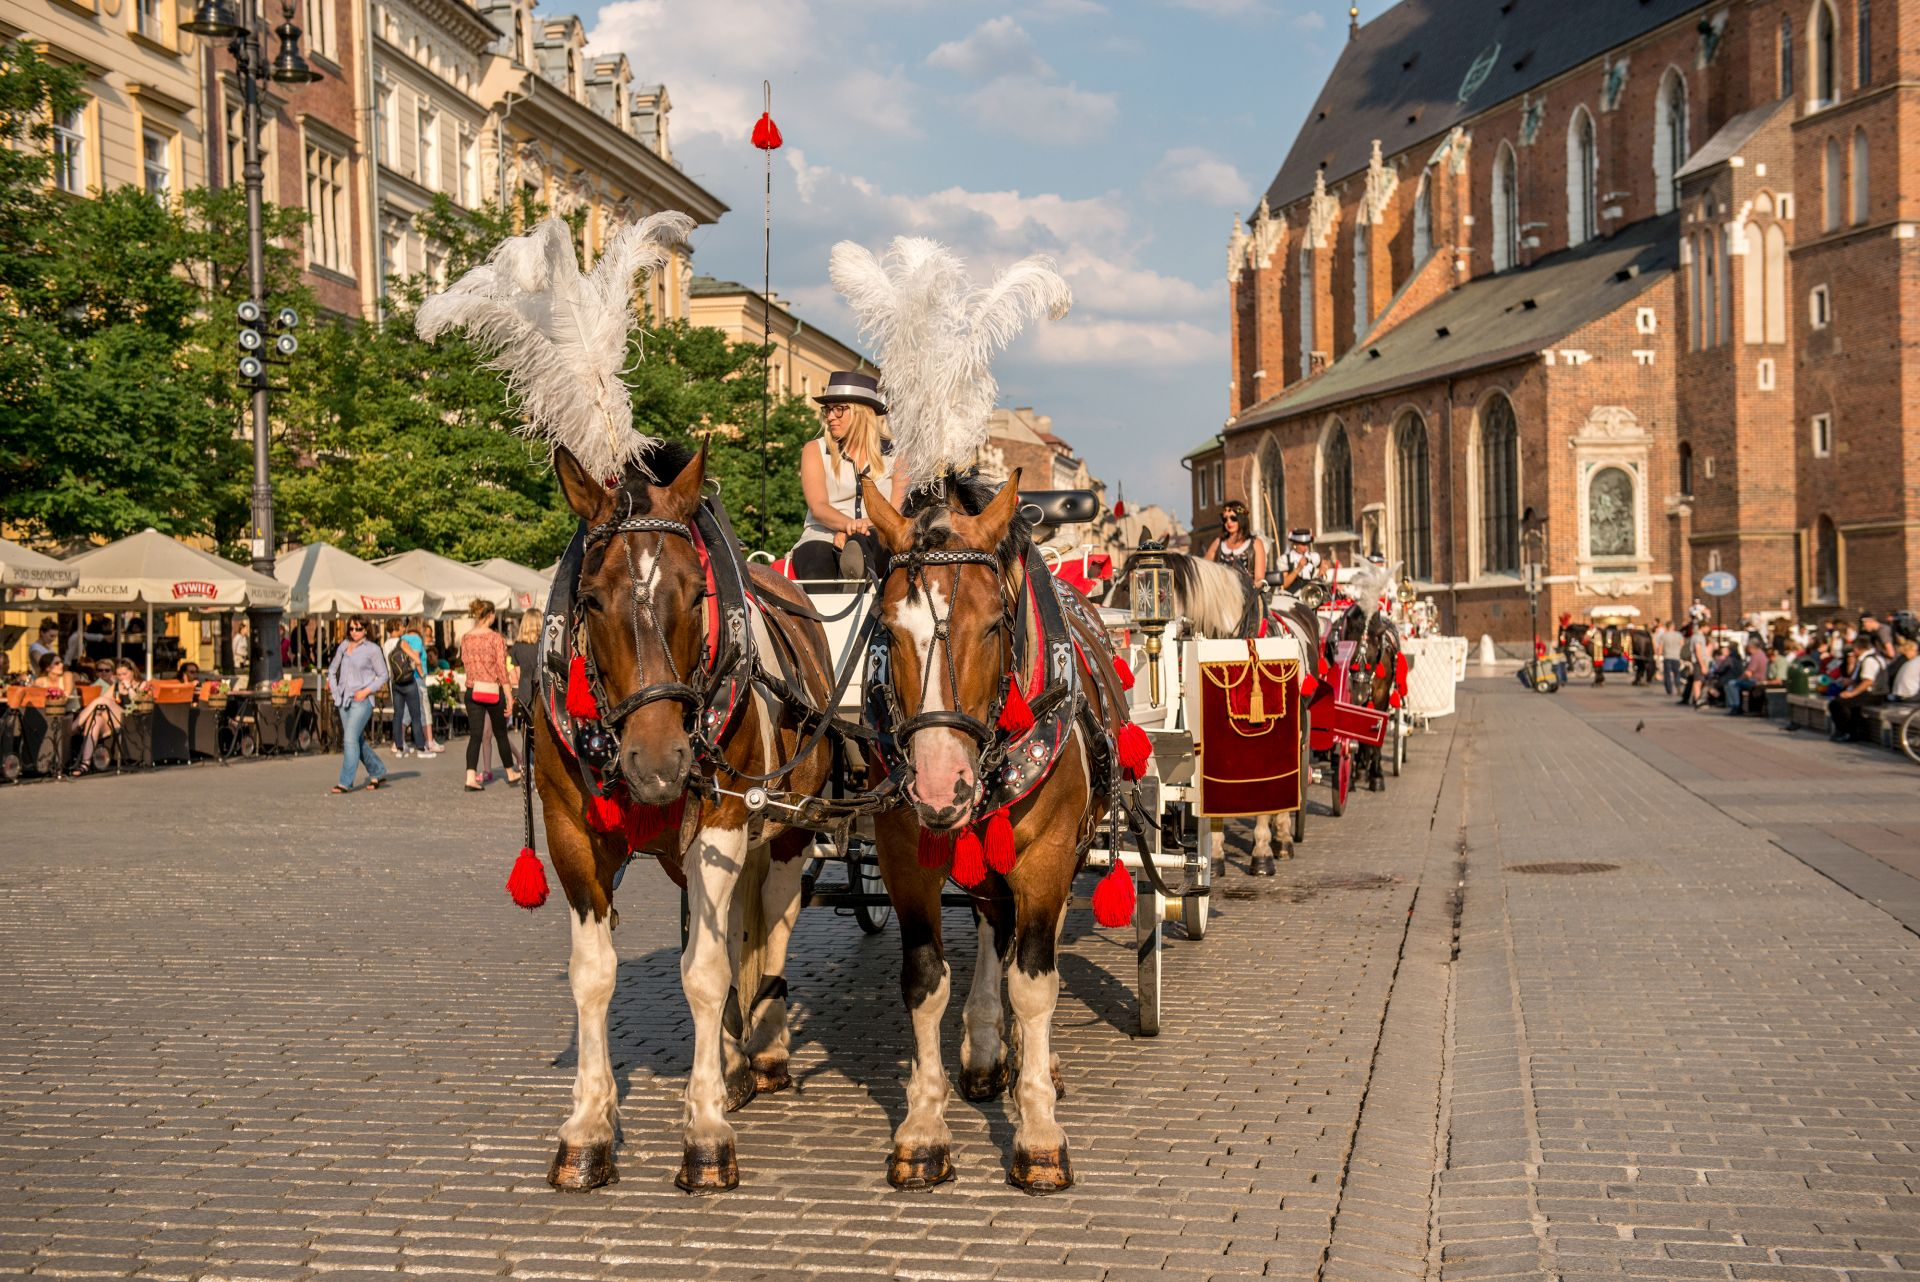 Carriage with horses, cobbled streets of Krakow